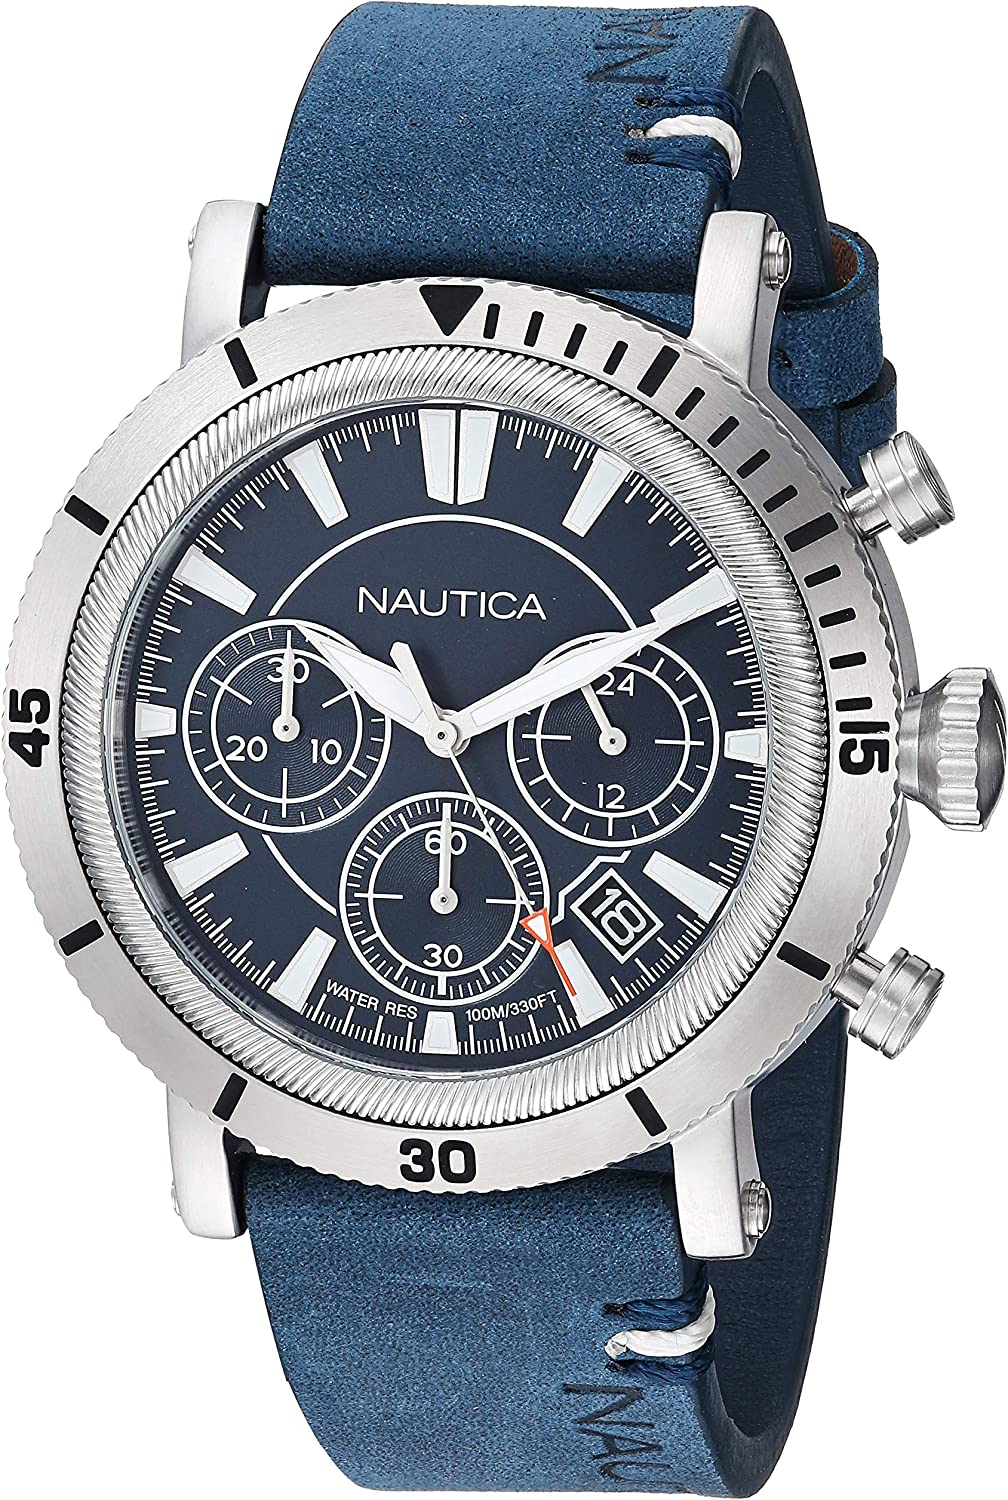 Nautica Men s Fairmont Chronograph Watch